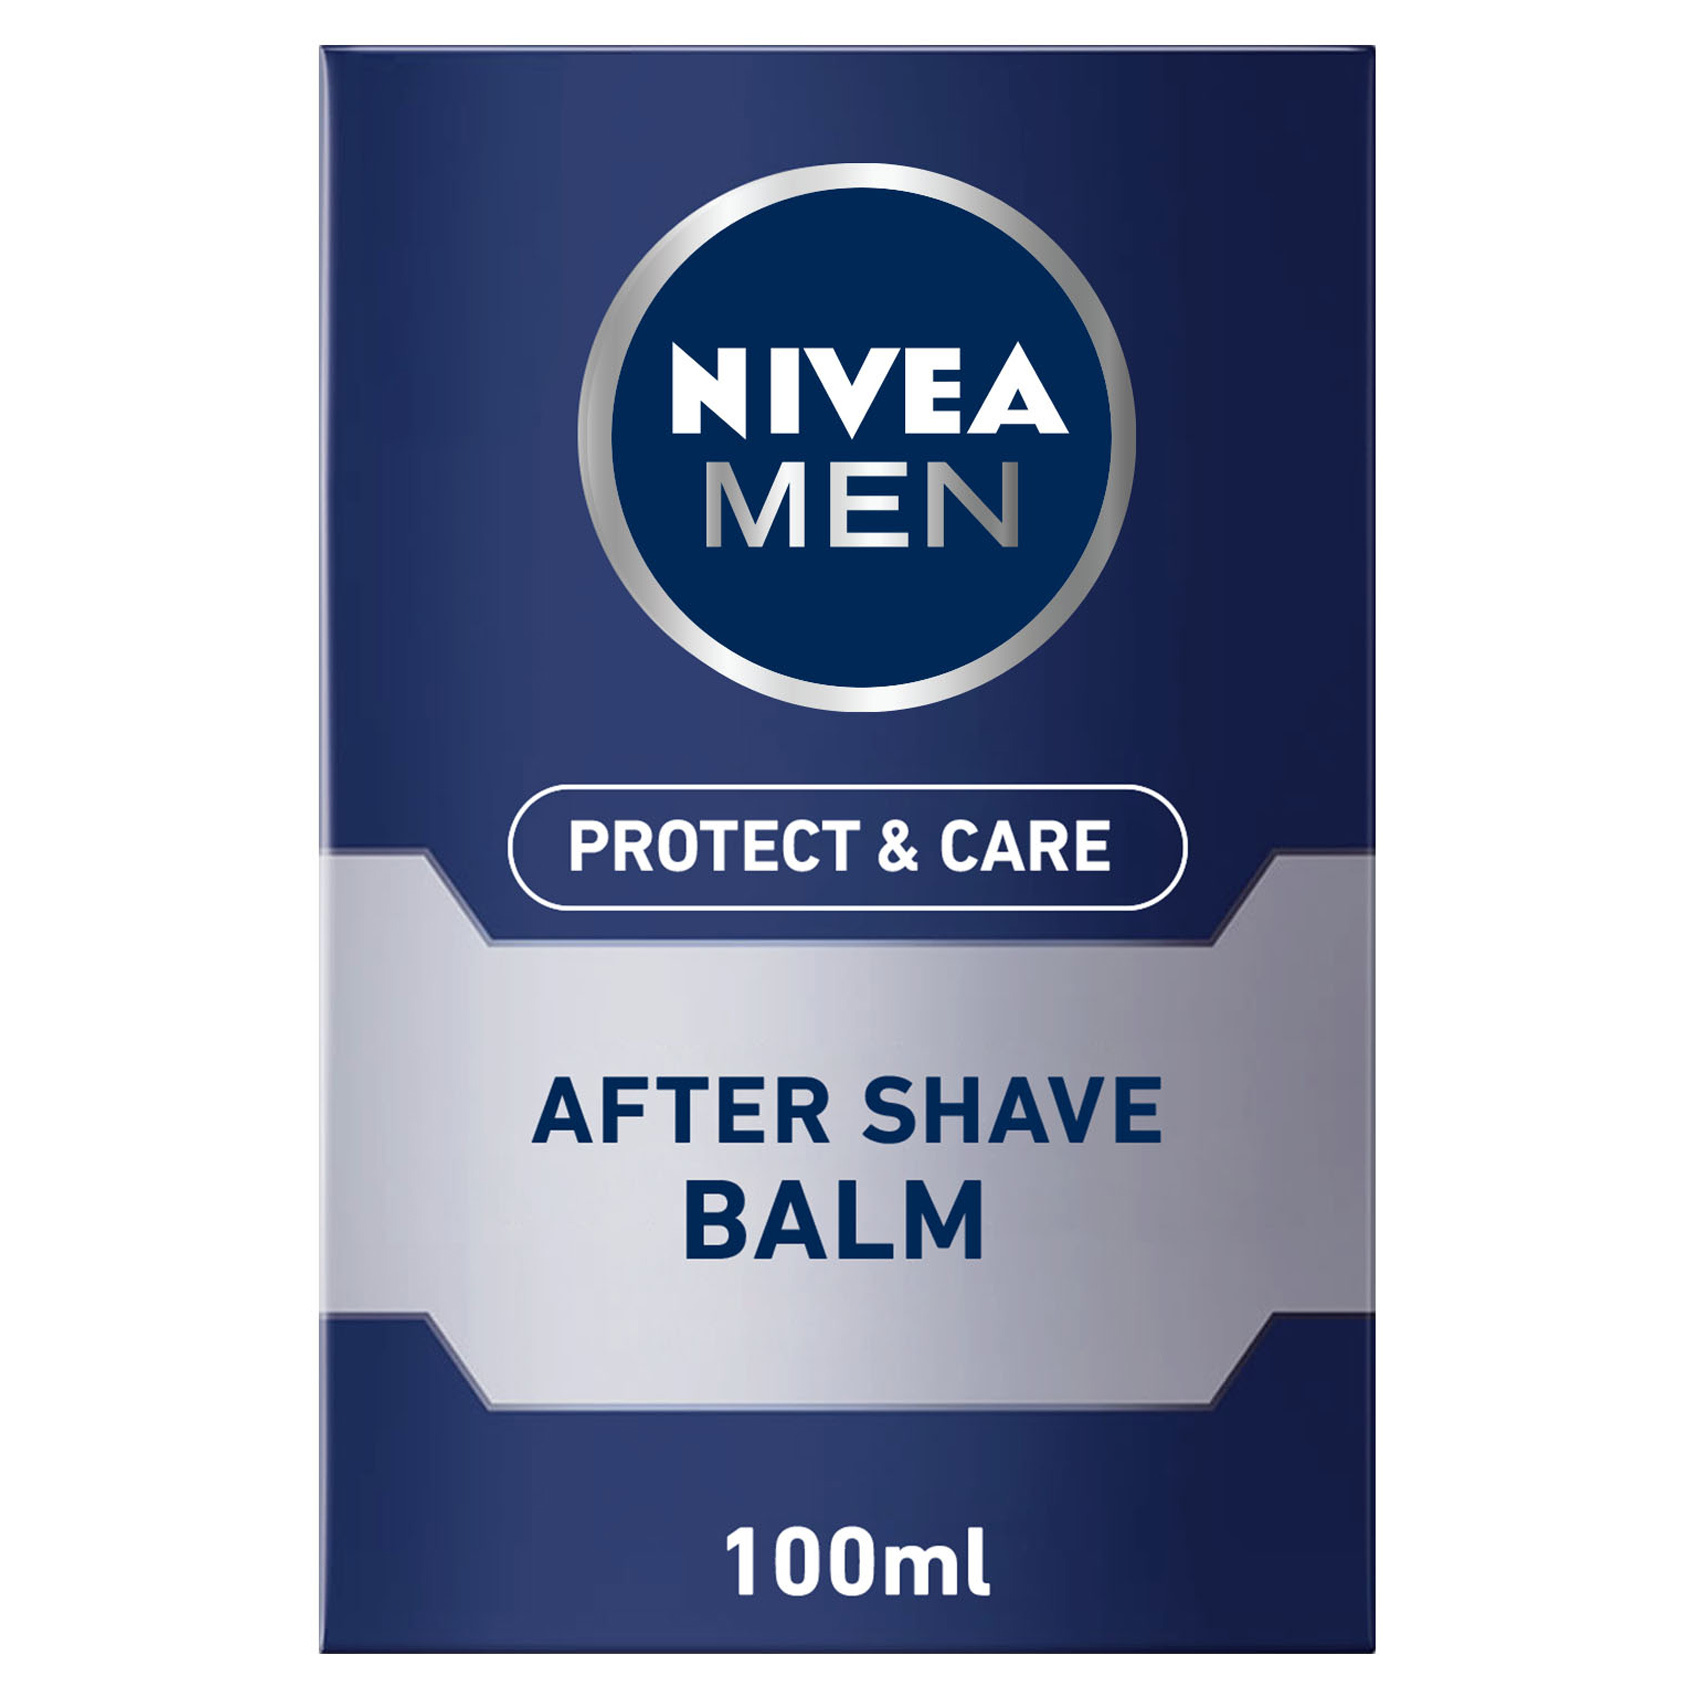 NIVEA MEN A/SHV REPLENISH BALM100ML